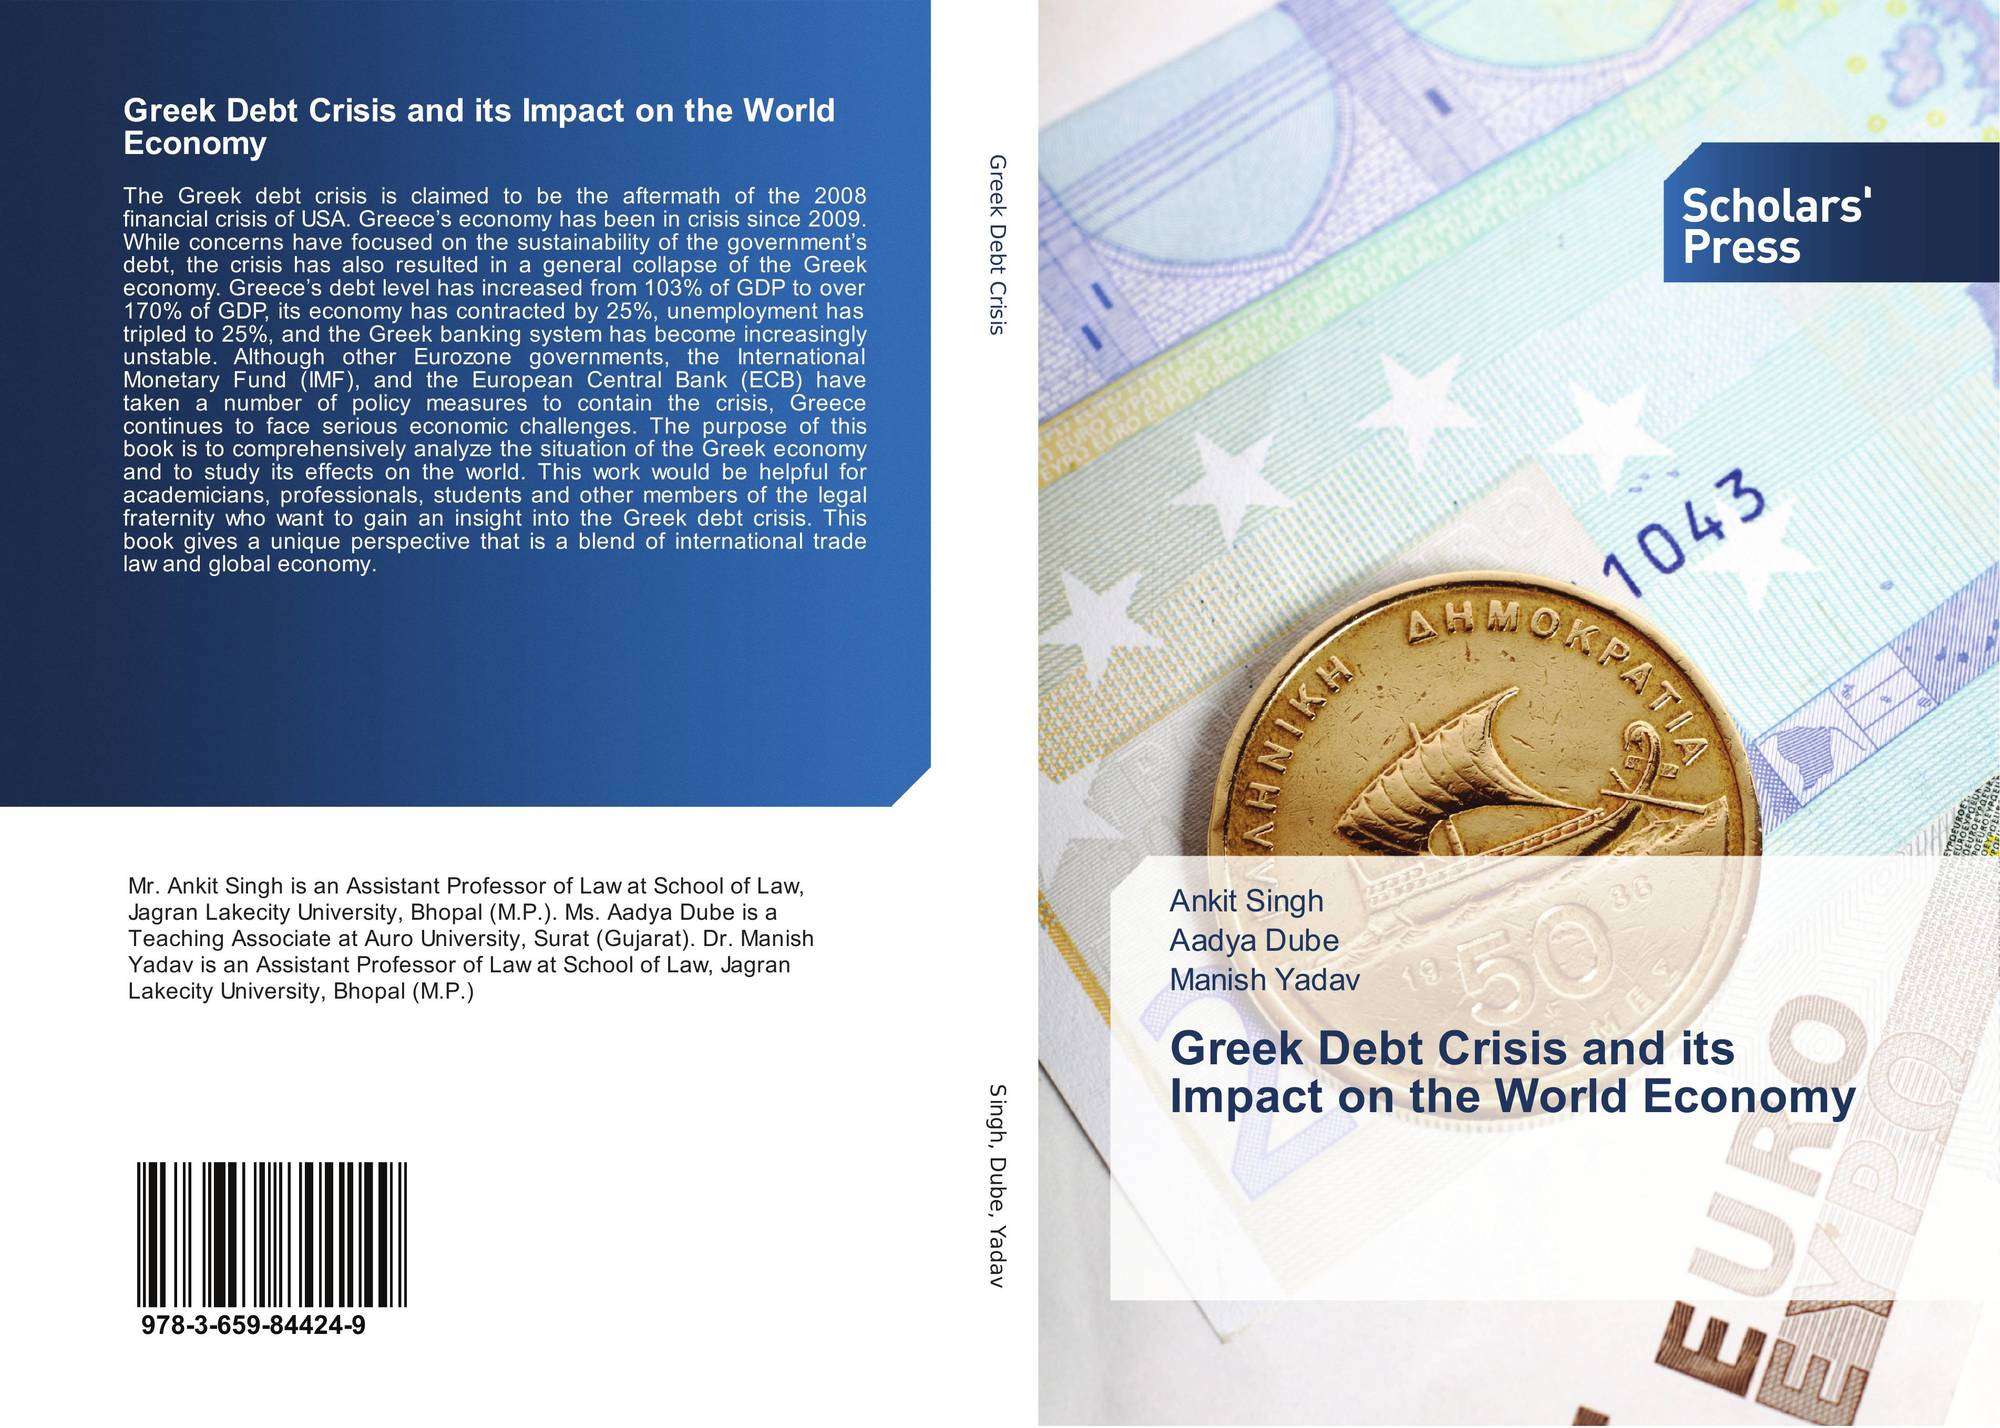 oil crisis and its impact The global financial crisis and its impact on eee trade export growth had been increasing at a roughly similar rate in most of the world's major geographical regions in the two years prior to the crisis (figure 5.